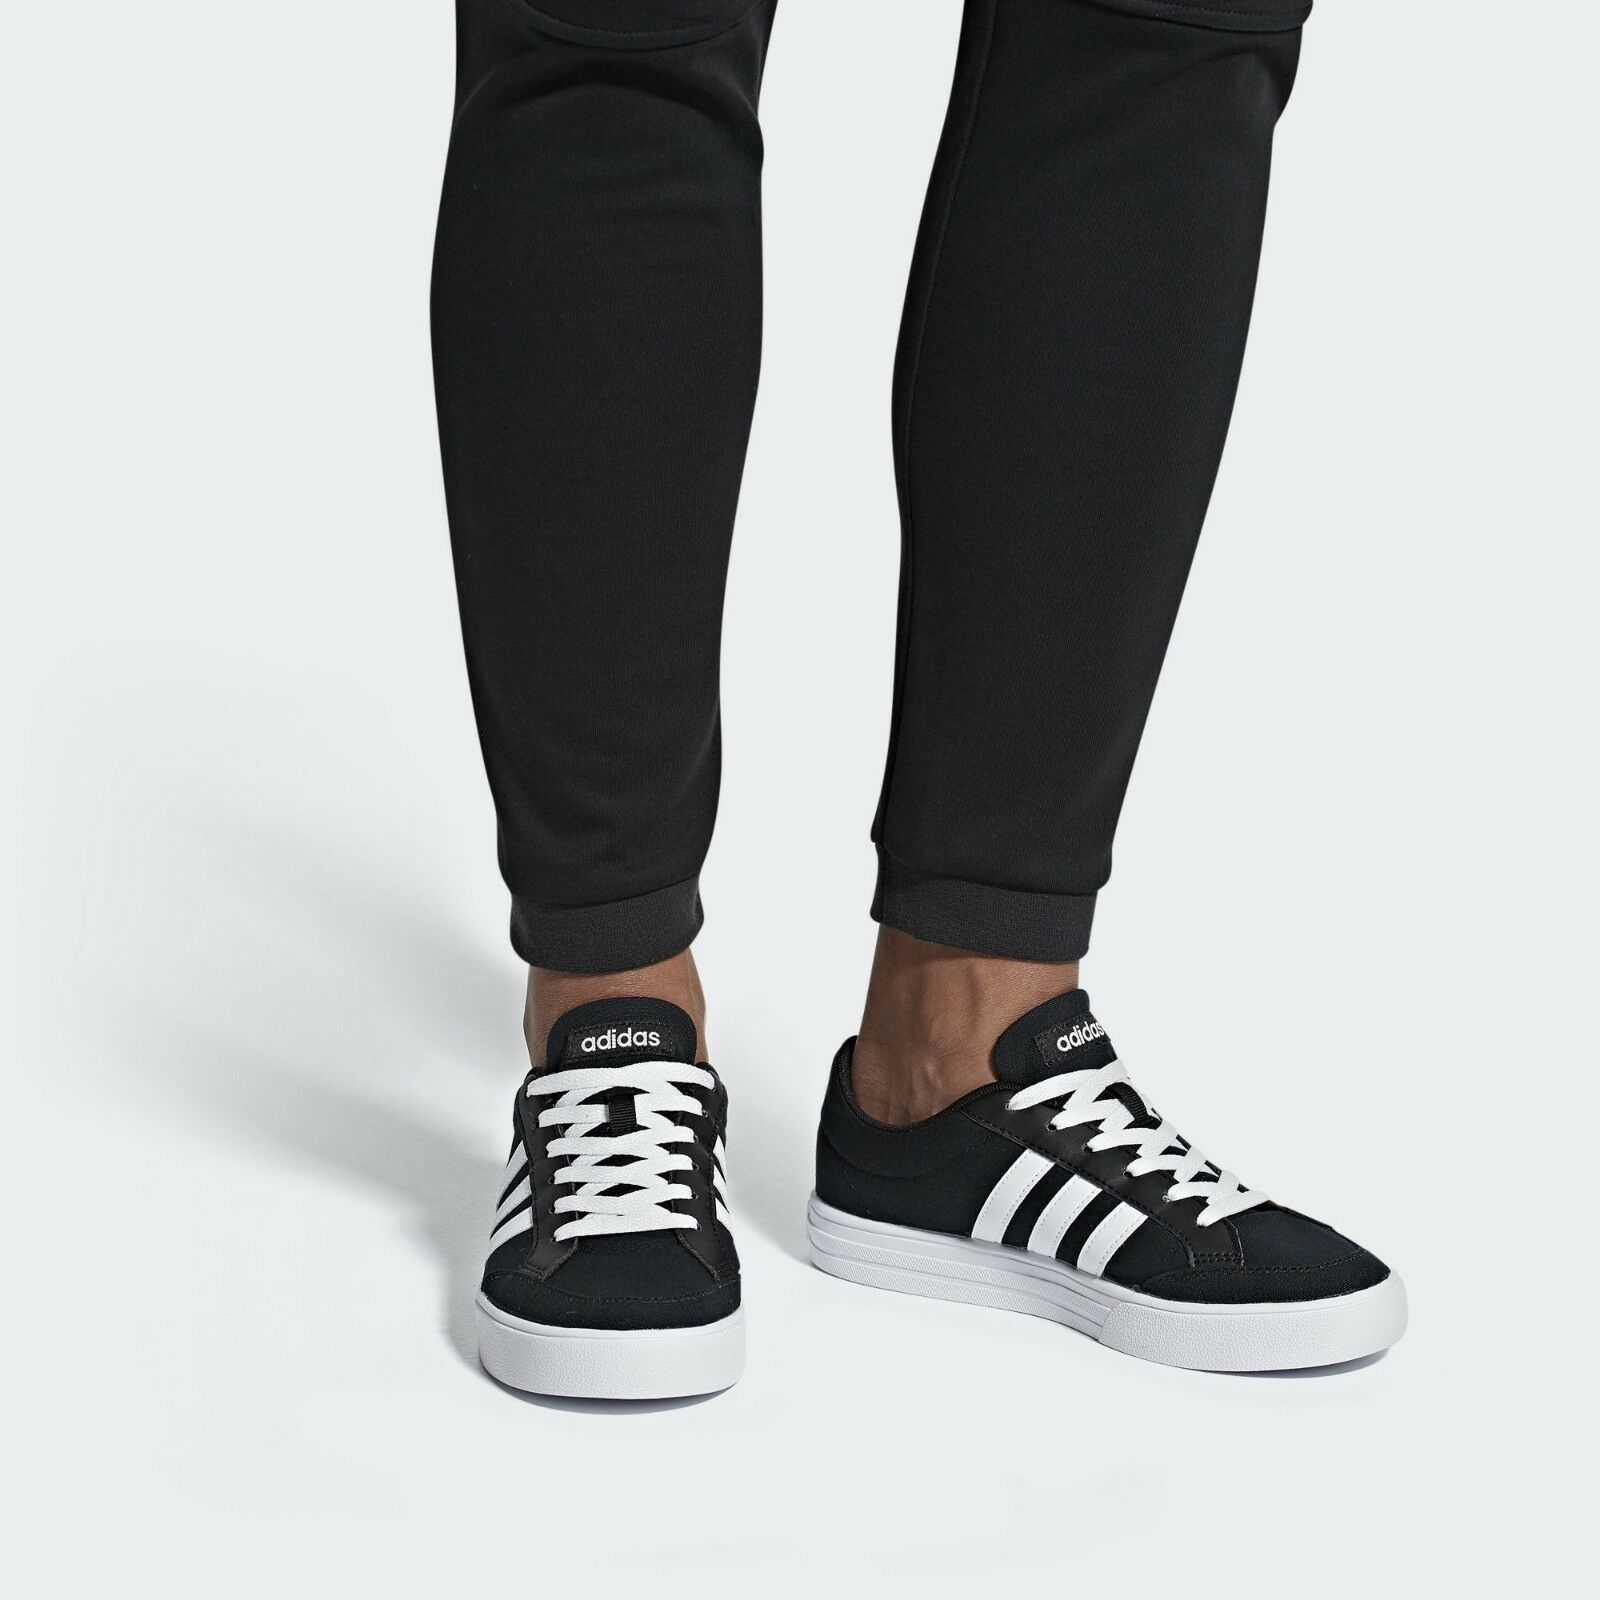 Adidas VS SET Price reduction Running Shoes Athletic Sneakers Trainers